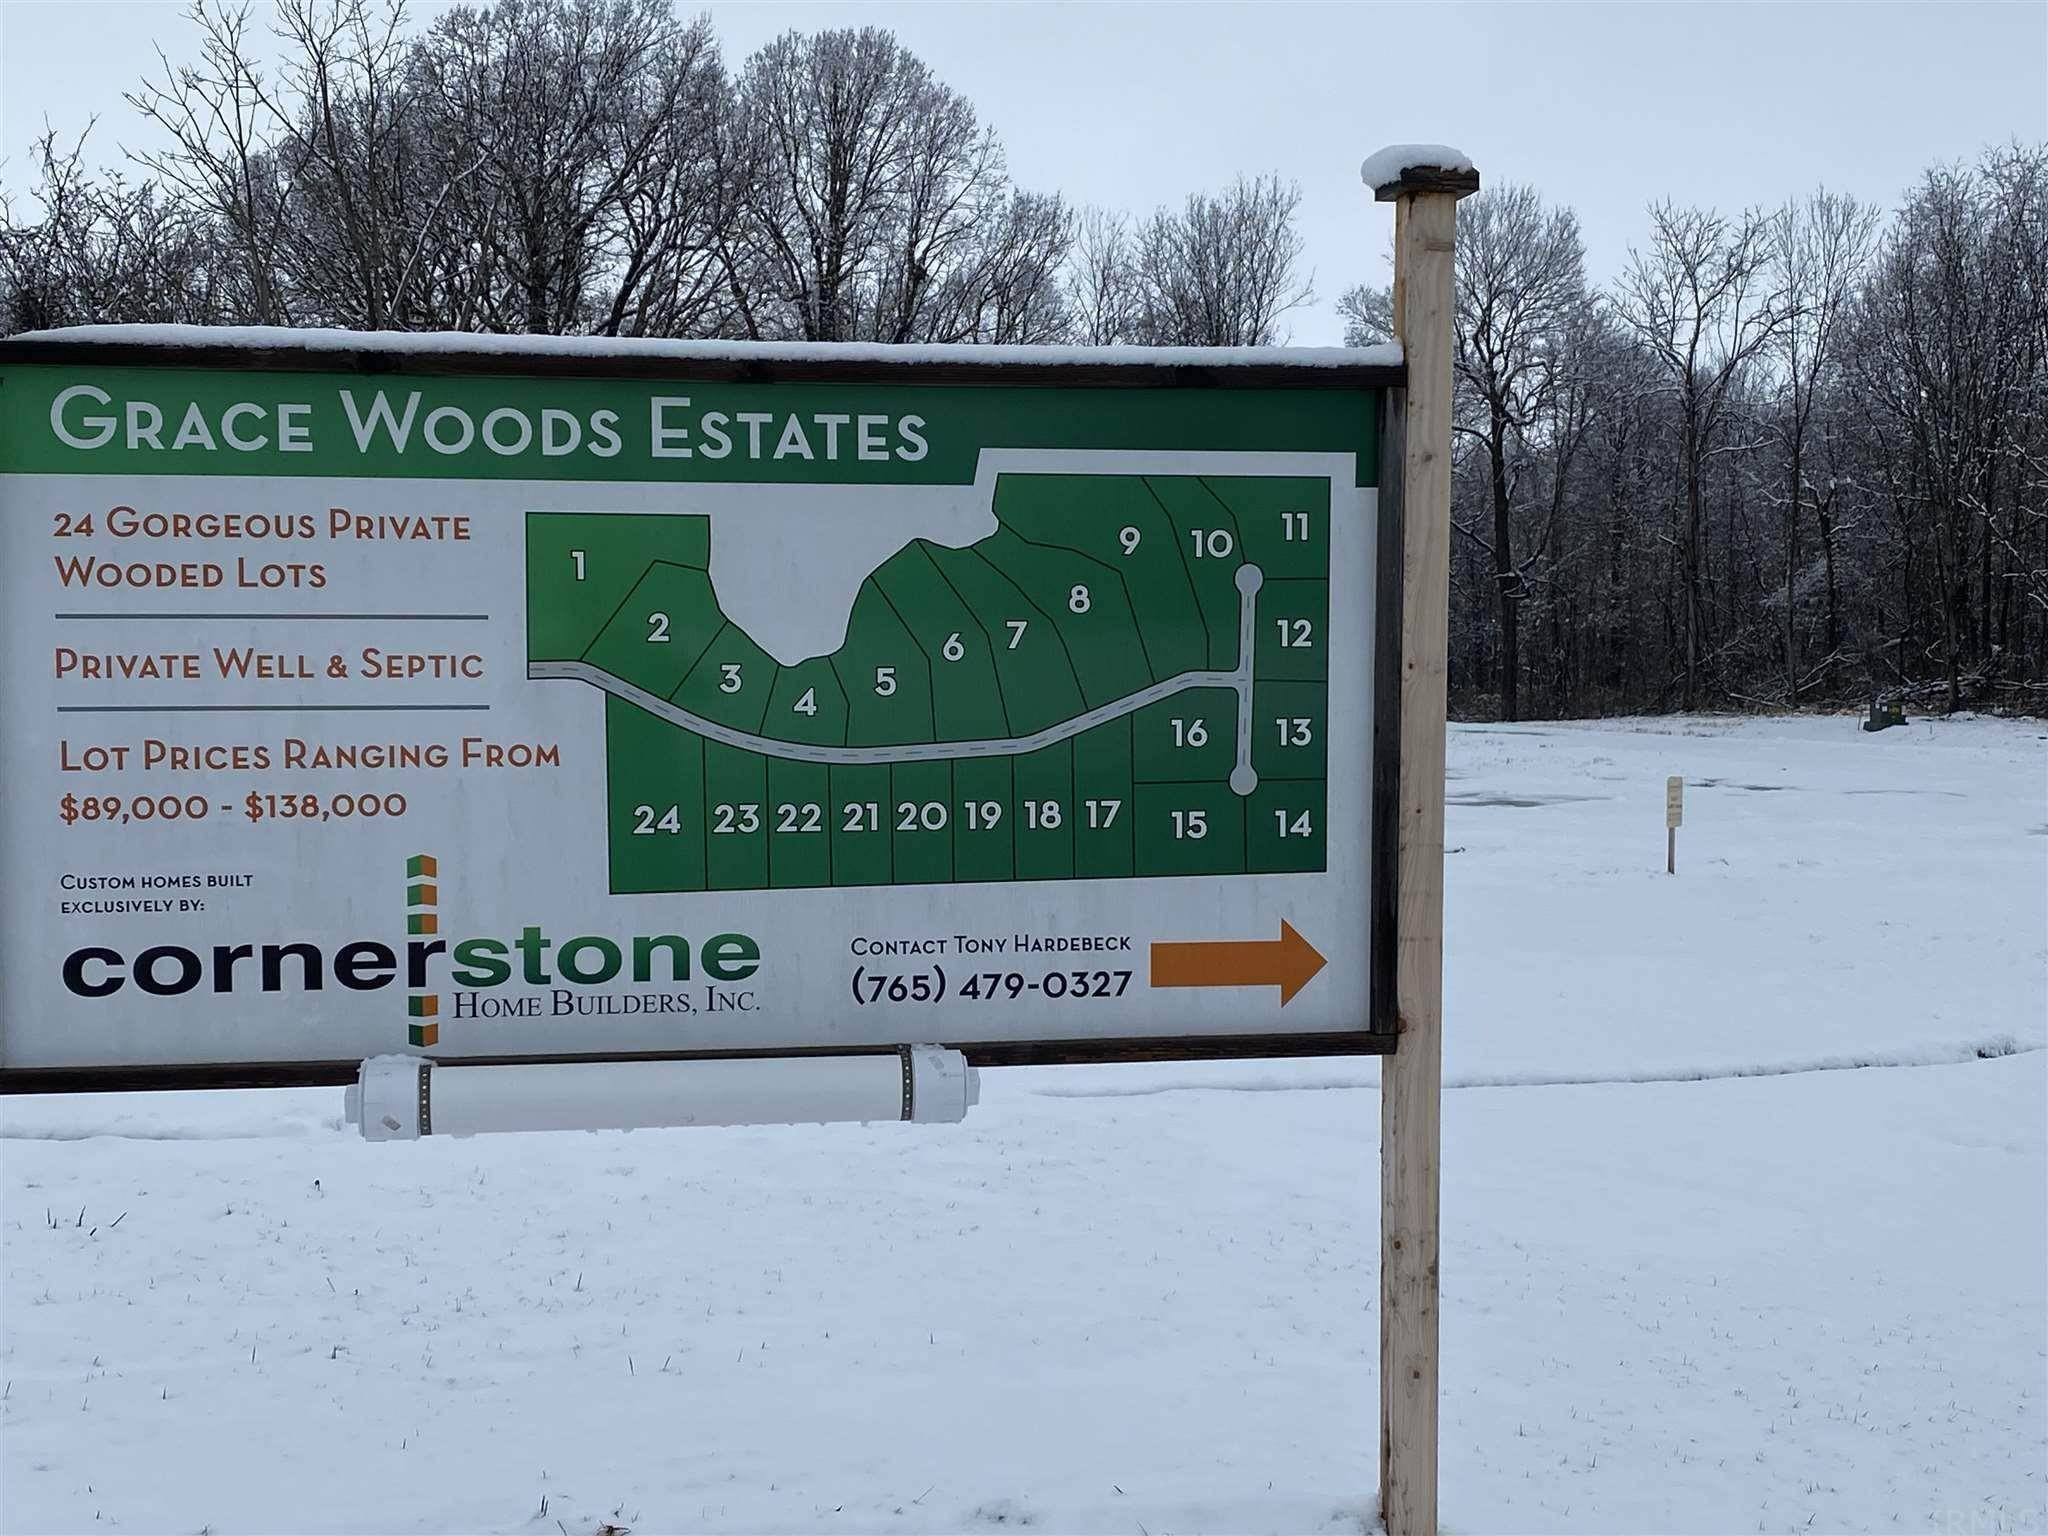 Residential Lots & Land for Sale at 1528 W Herring Way Battle Ground, Indiana 47920 United States